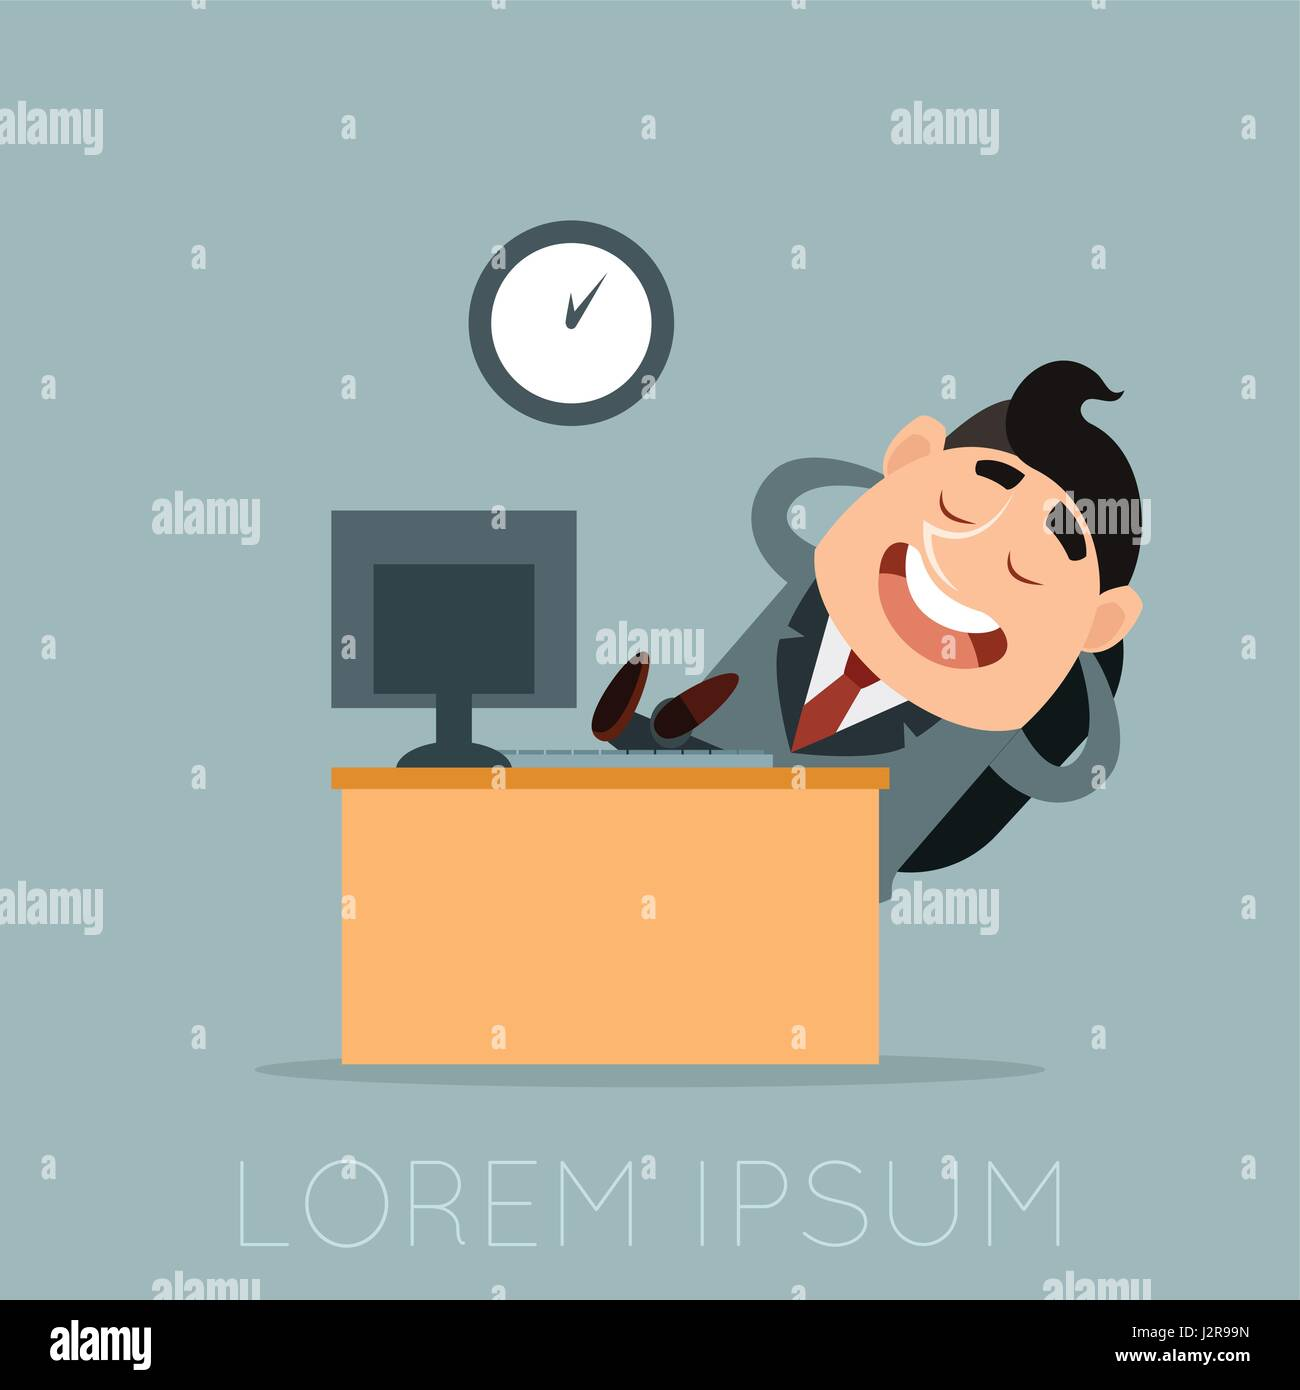 how to be lazy at work